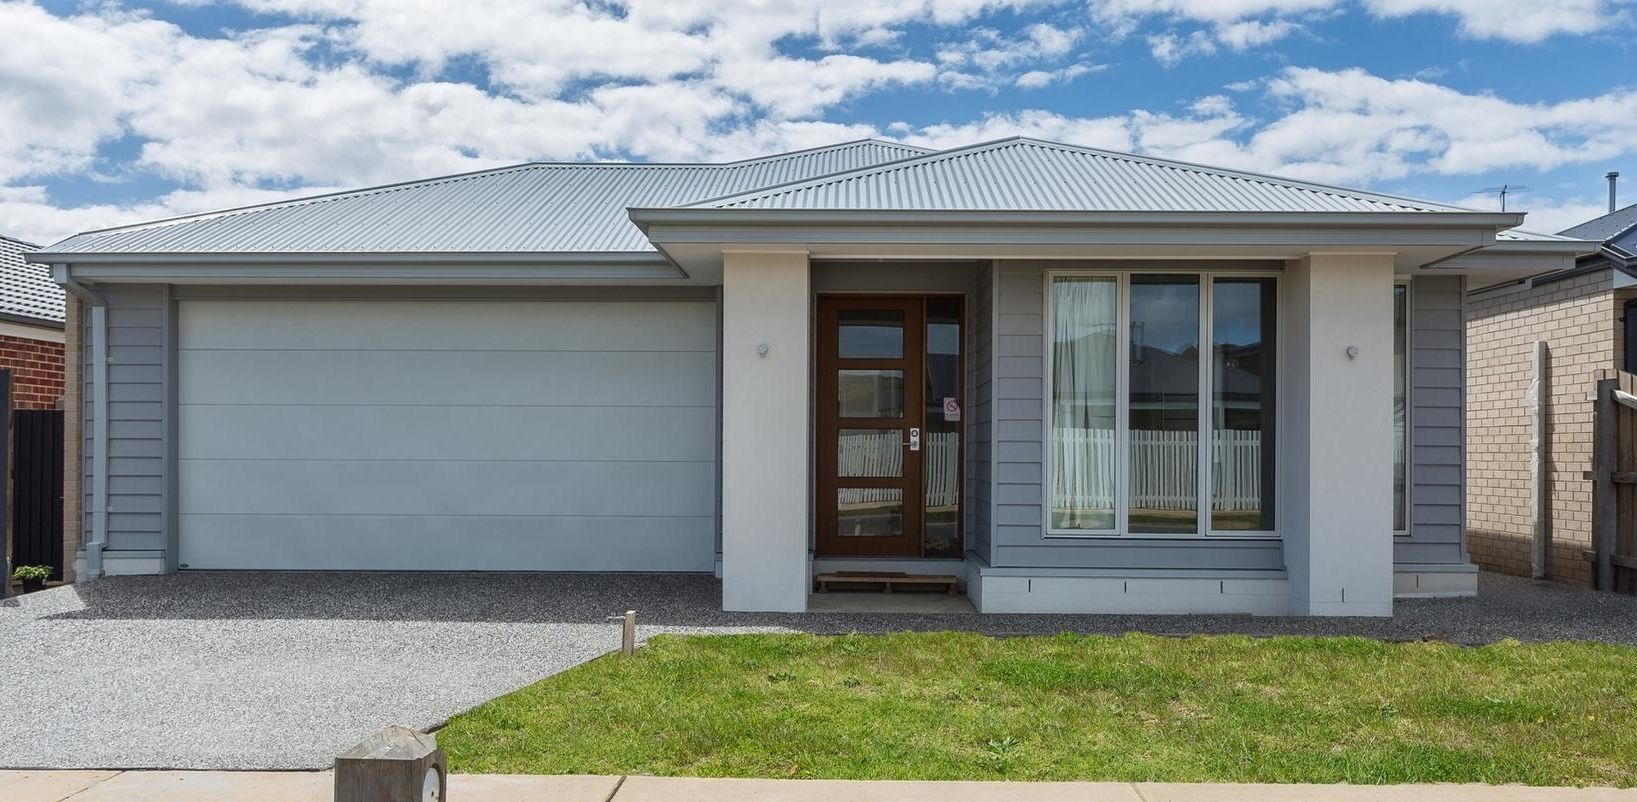 17 Macks Place, Safety Beach VIC 3936, Image 1